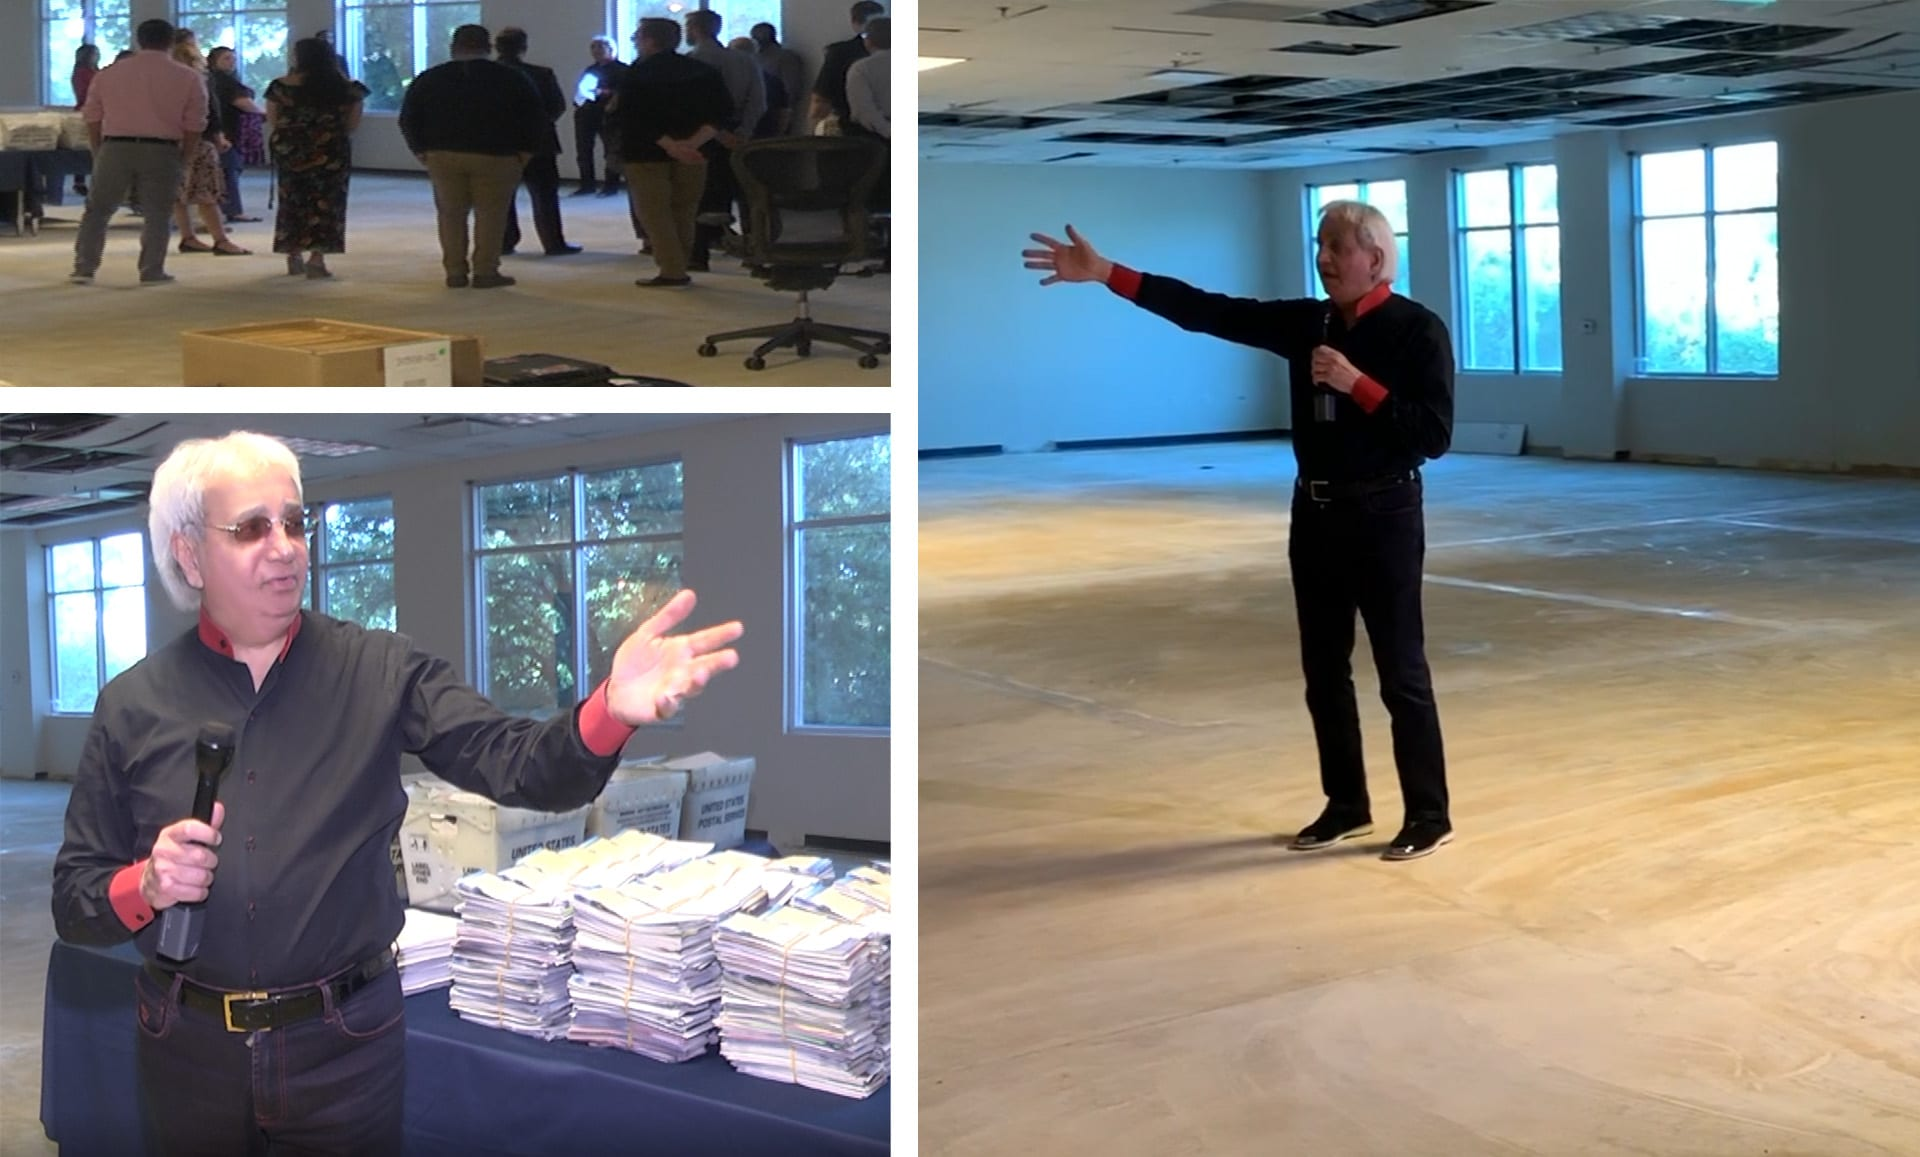 Pastor Benny touring the new This Is Your Day space.